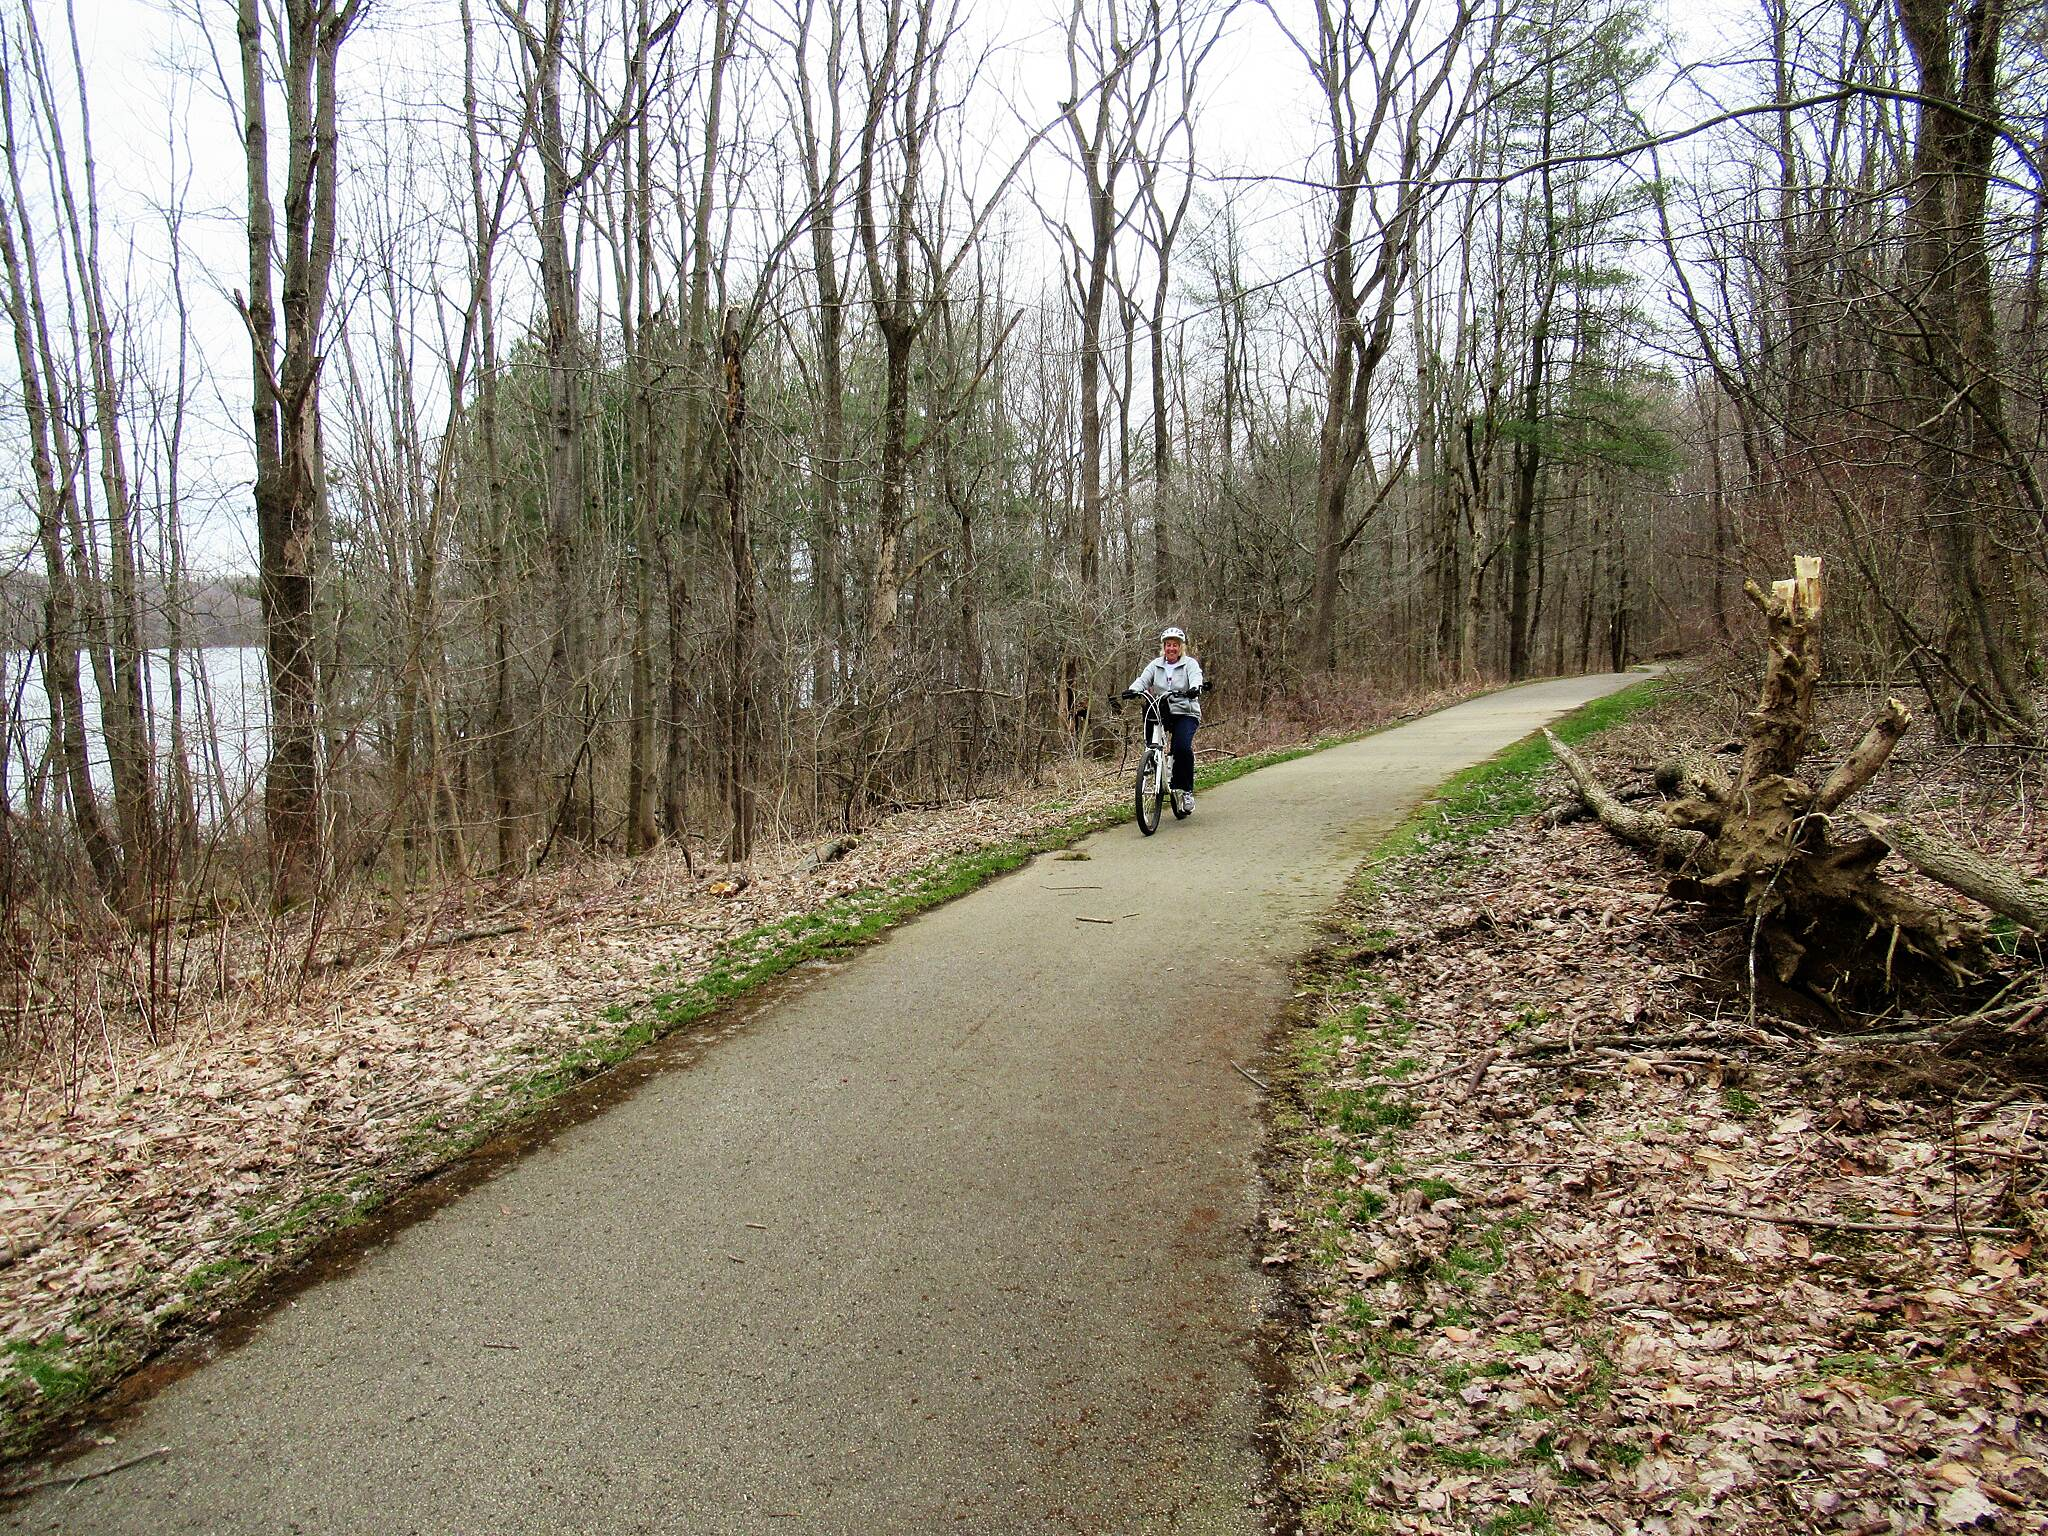 John C. Oliver Multi-Purpose Loop Trail Biking along the trail Enjoying a nice Spring ride on the trail